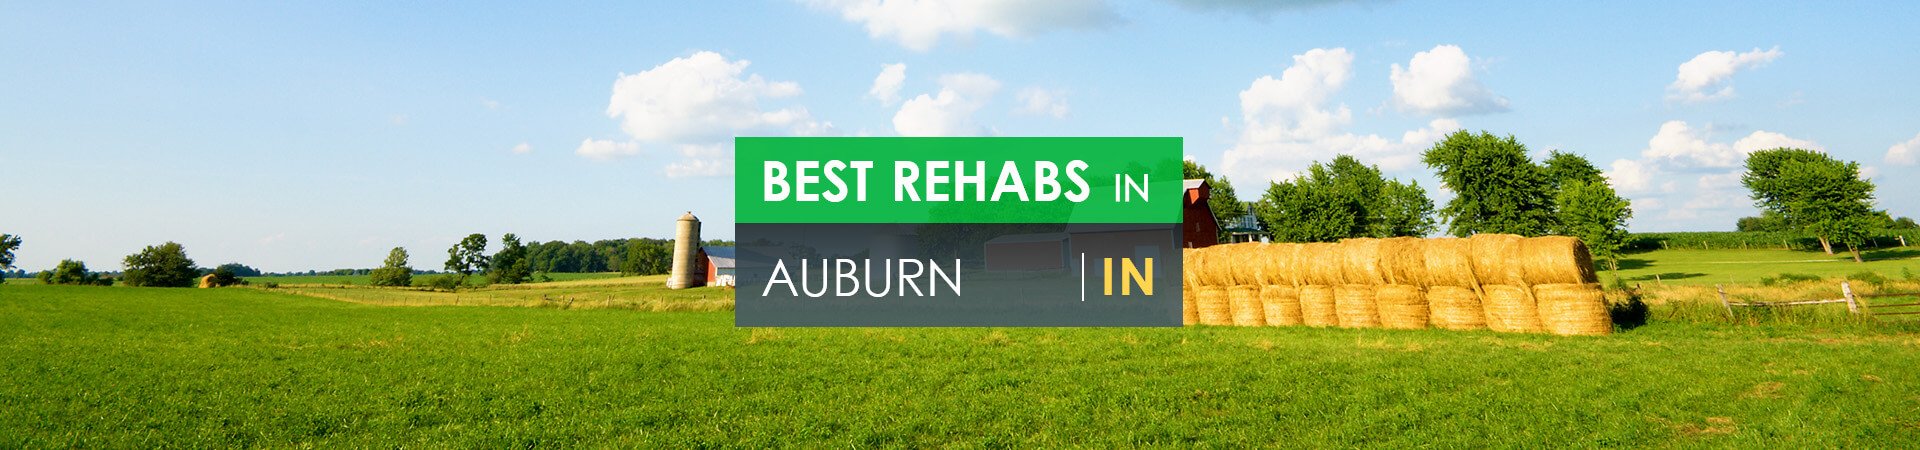 Best rehabs in Auburn, IN